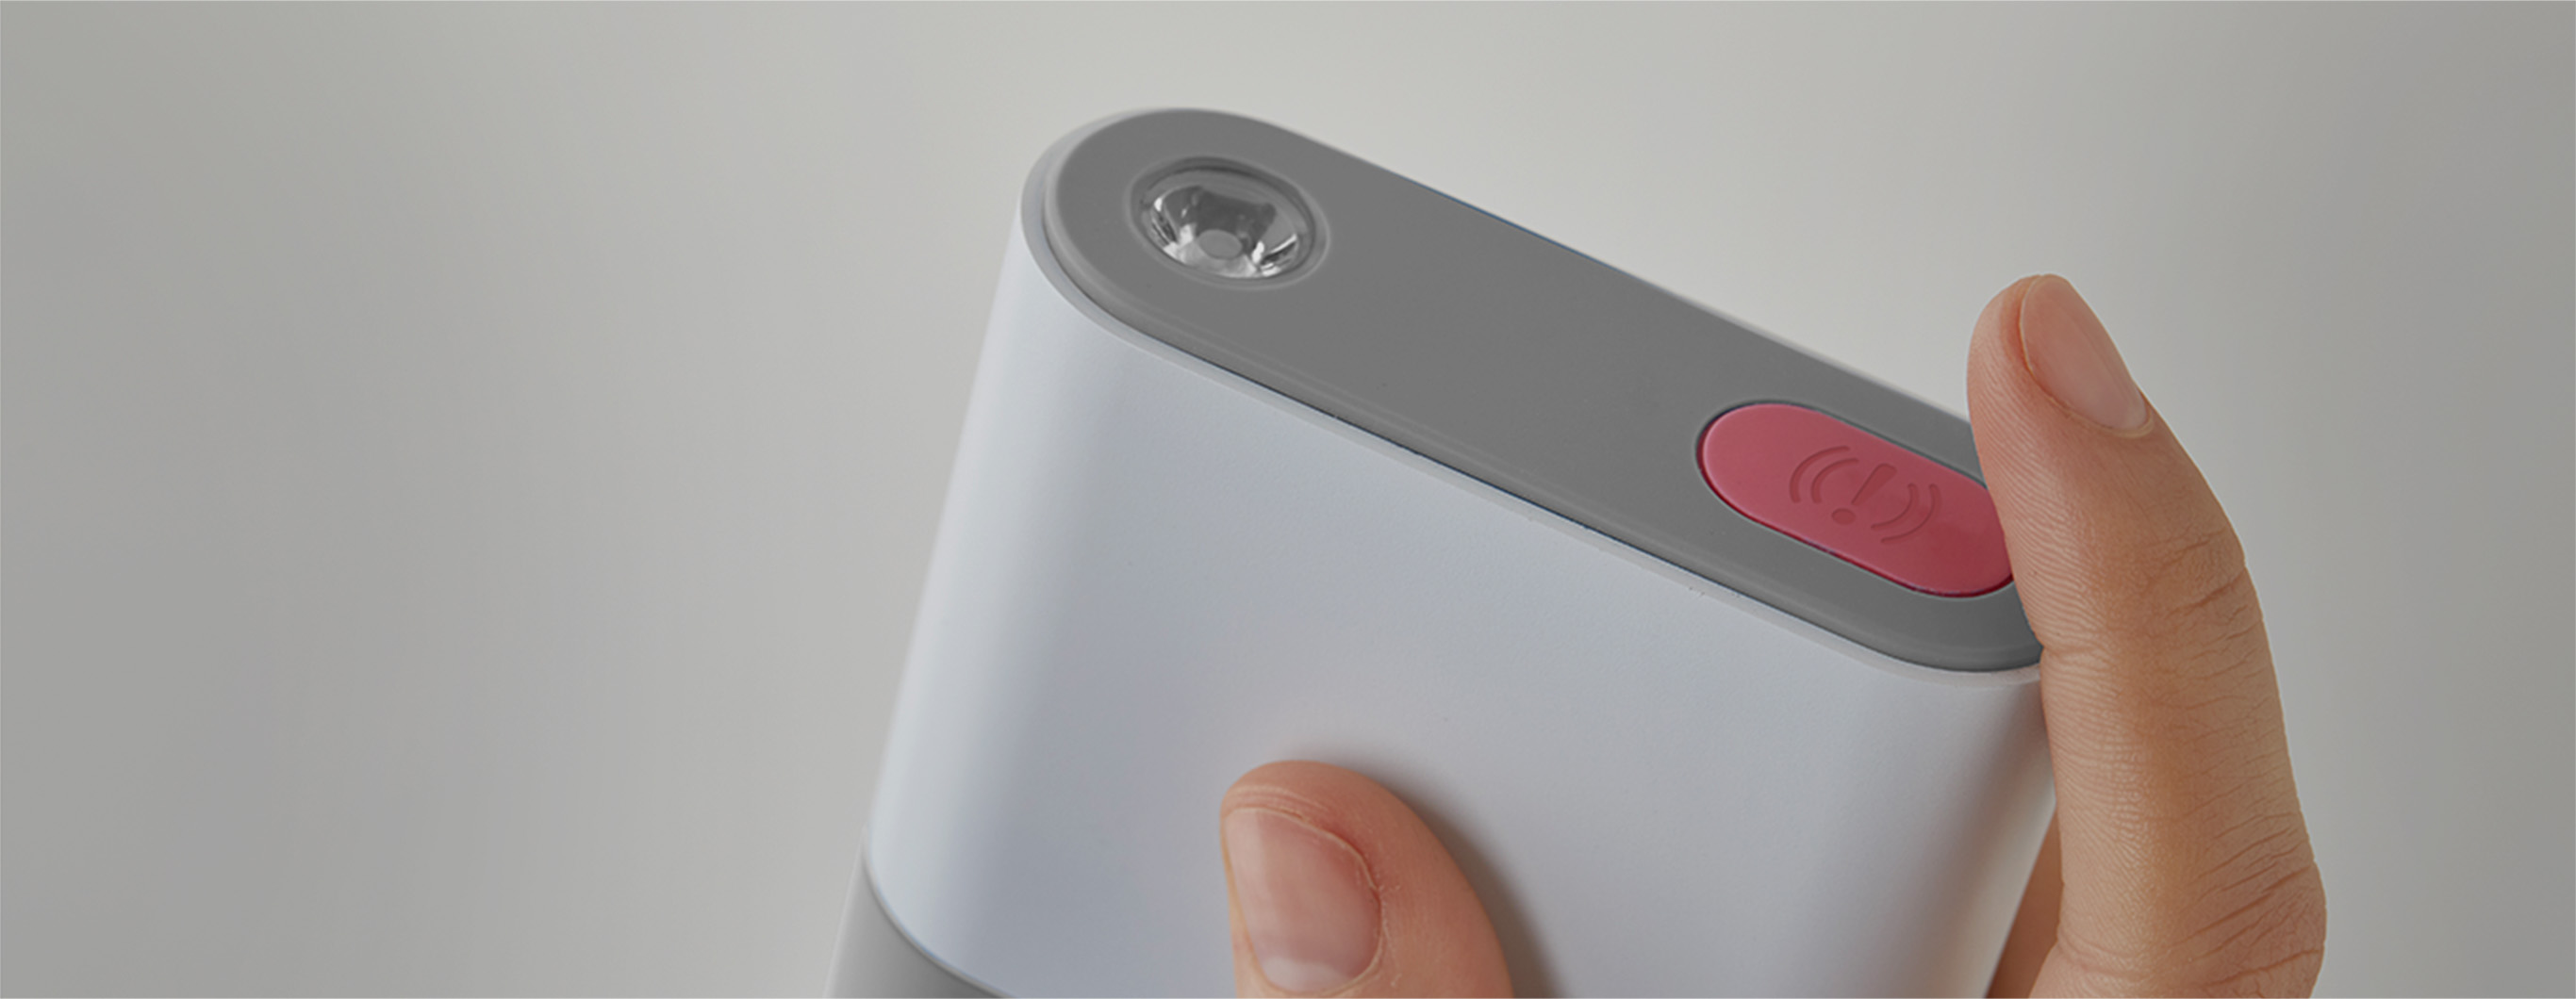 Person holding their phone and a 5-in-1.